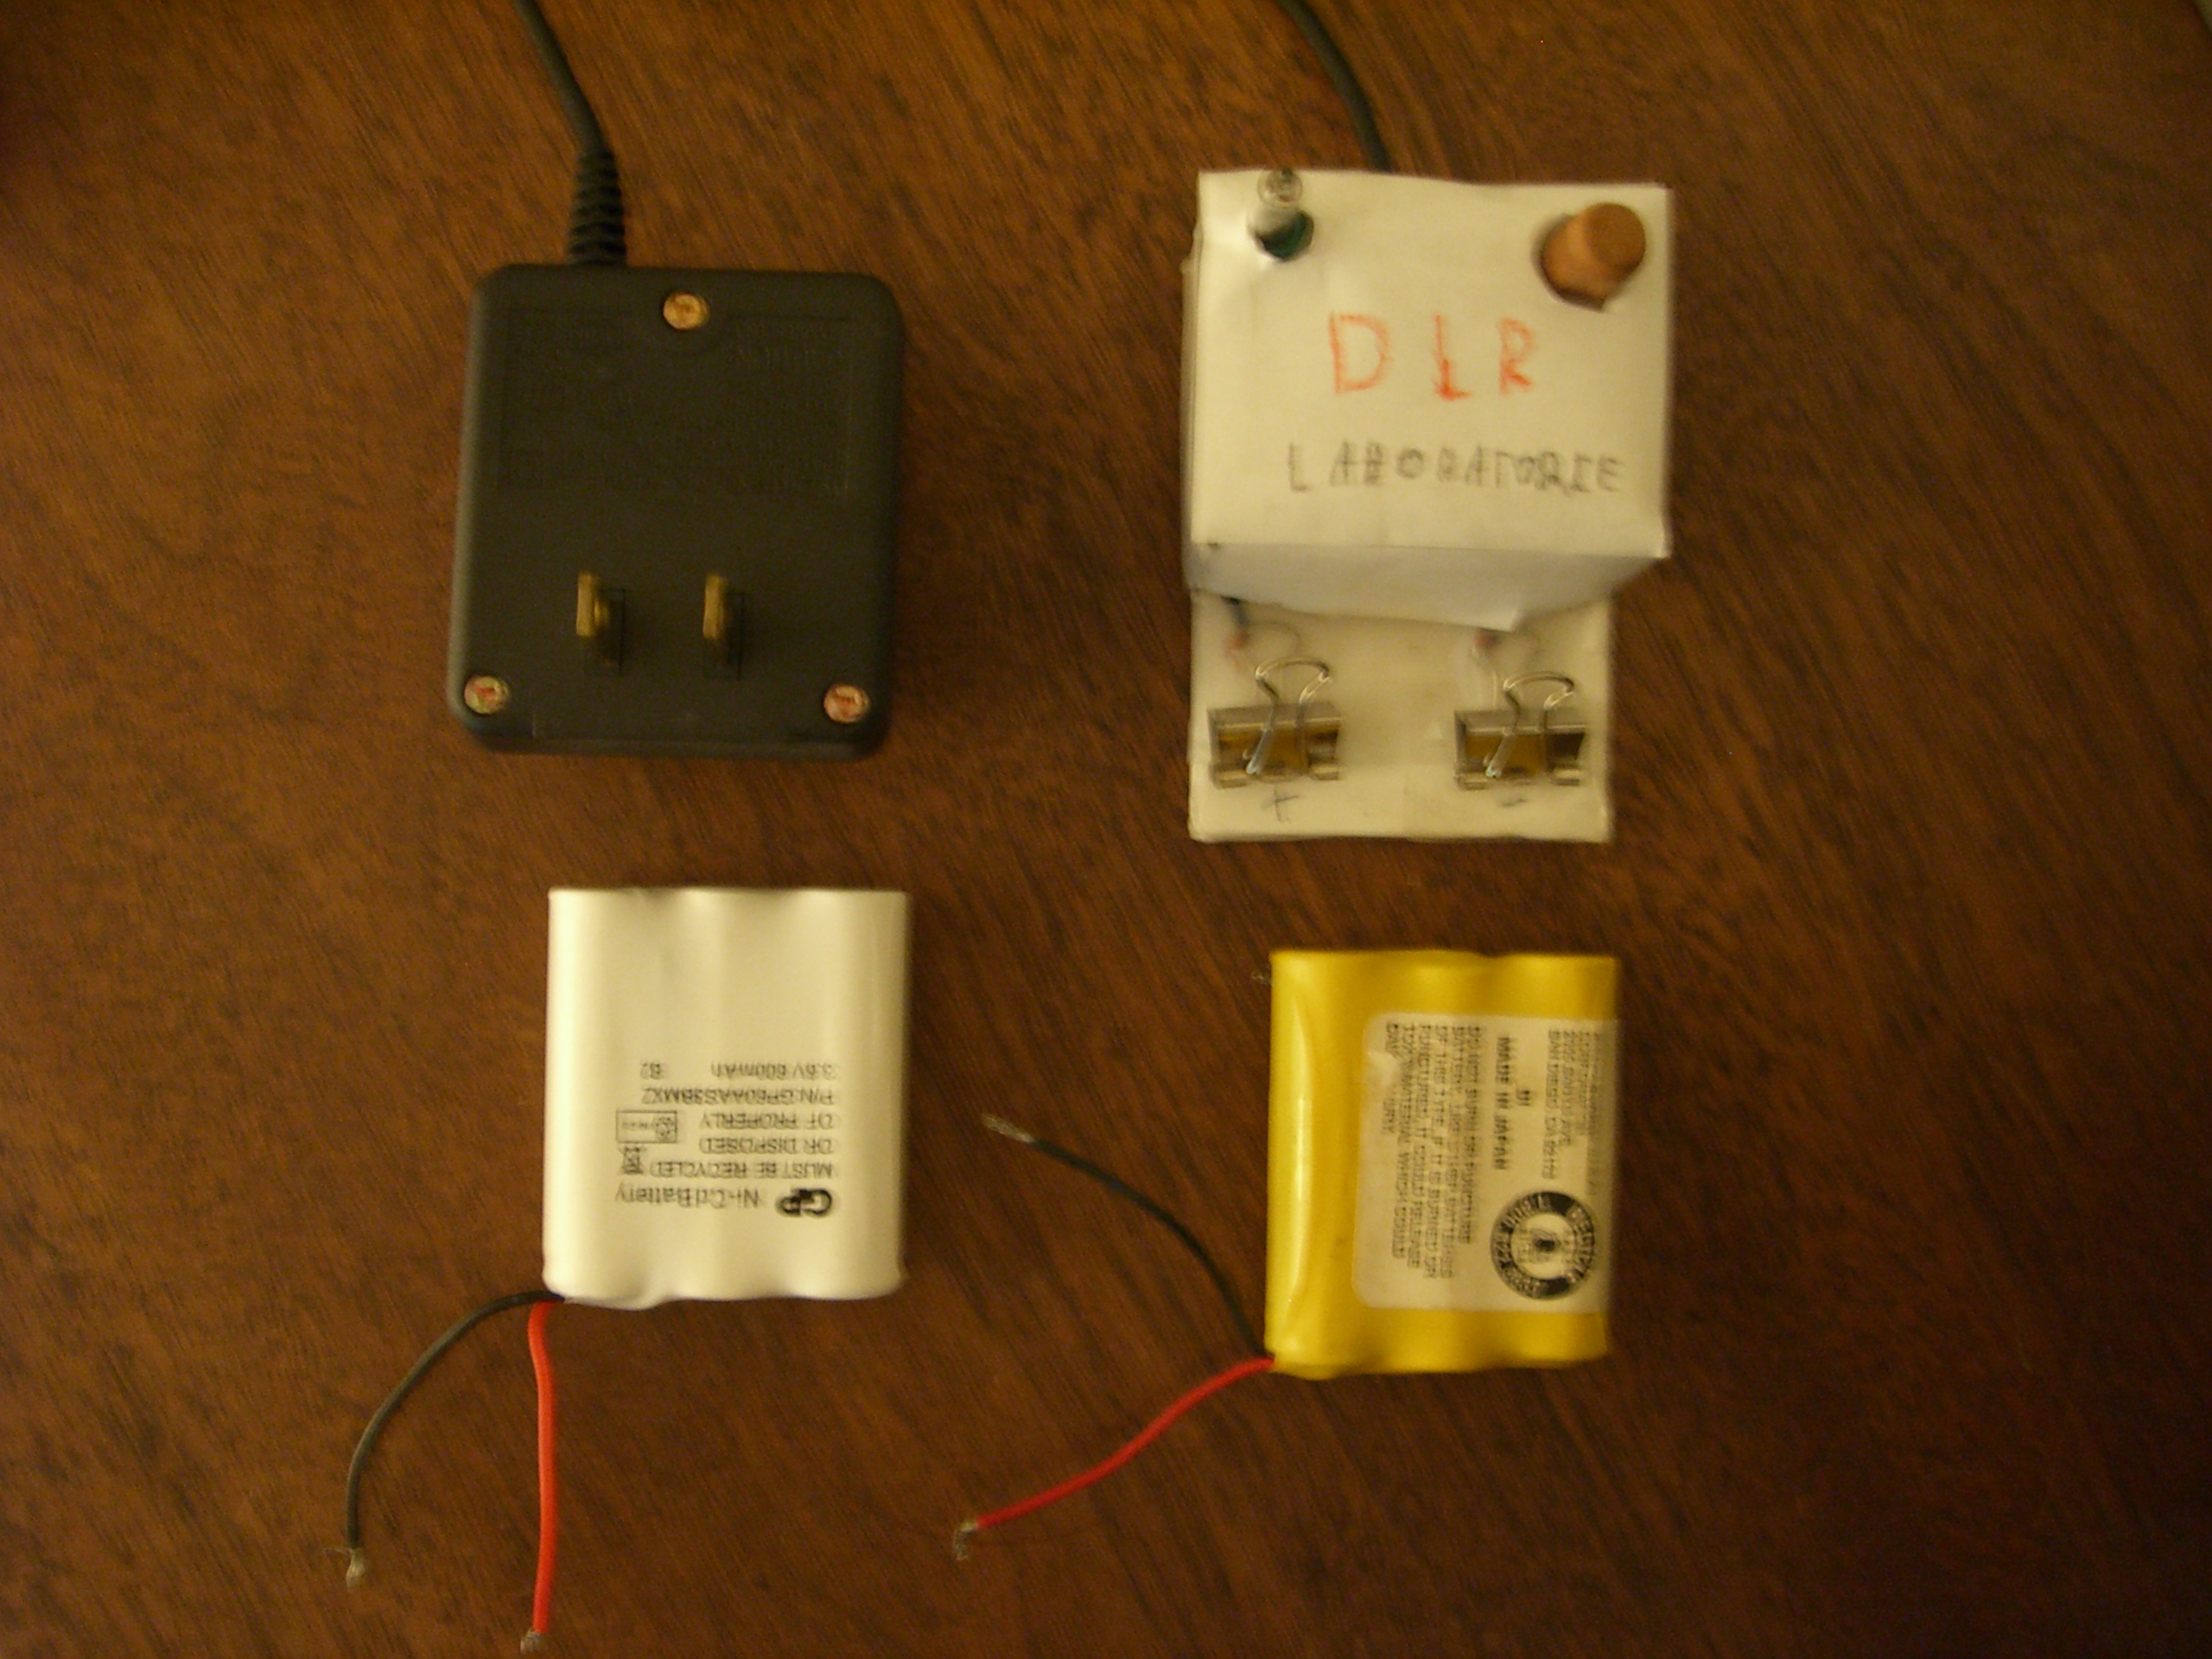 Easy Nickel Cadmium Battery Charger / Discharger